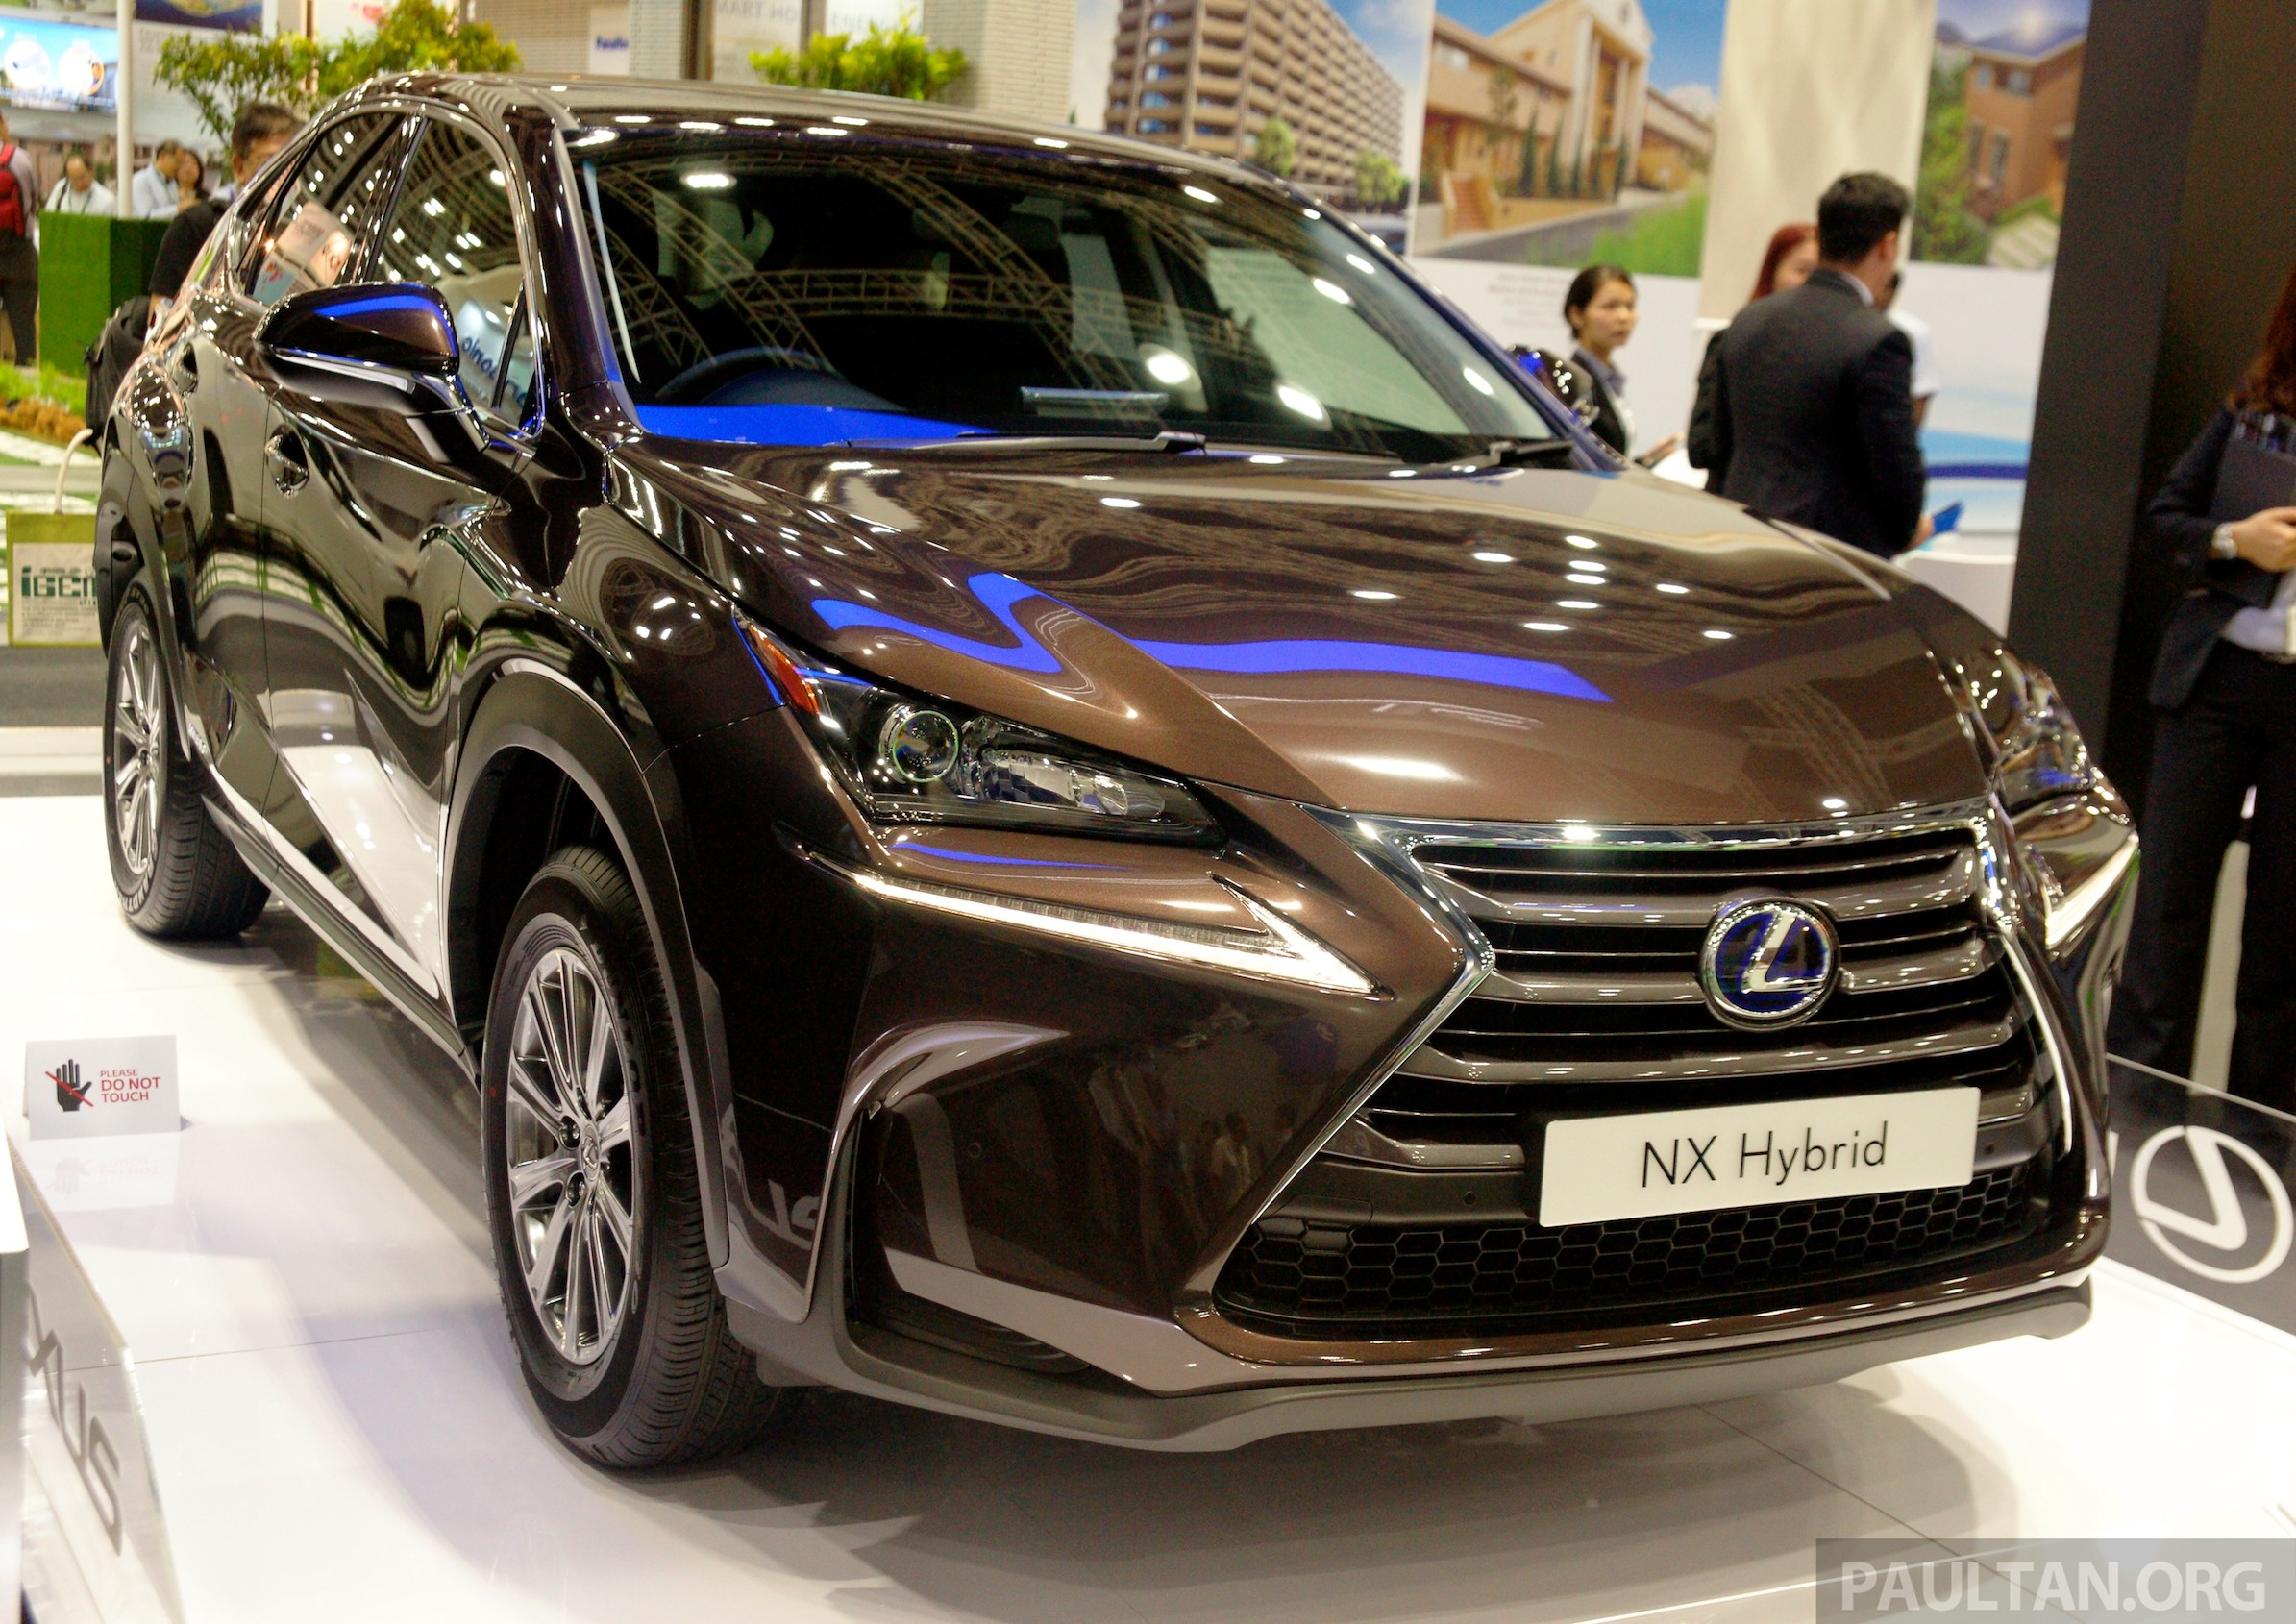 Lexus NX 300h on display at IGEM 2014 in KLCC Image 280990